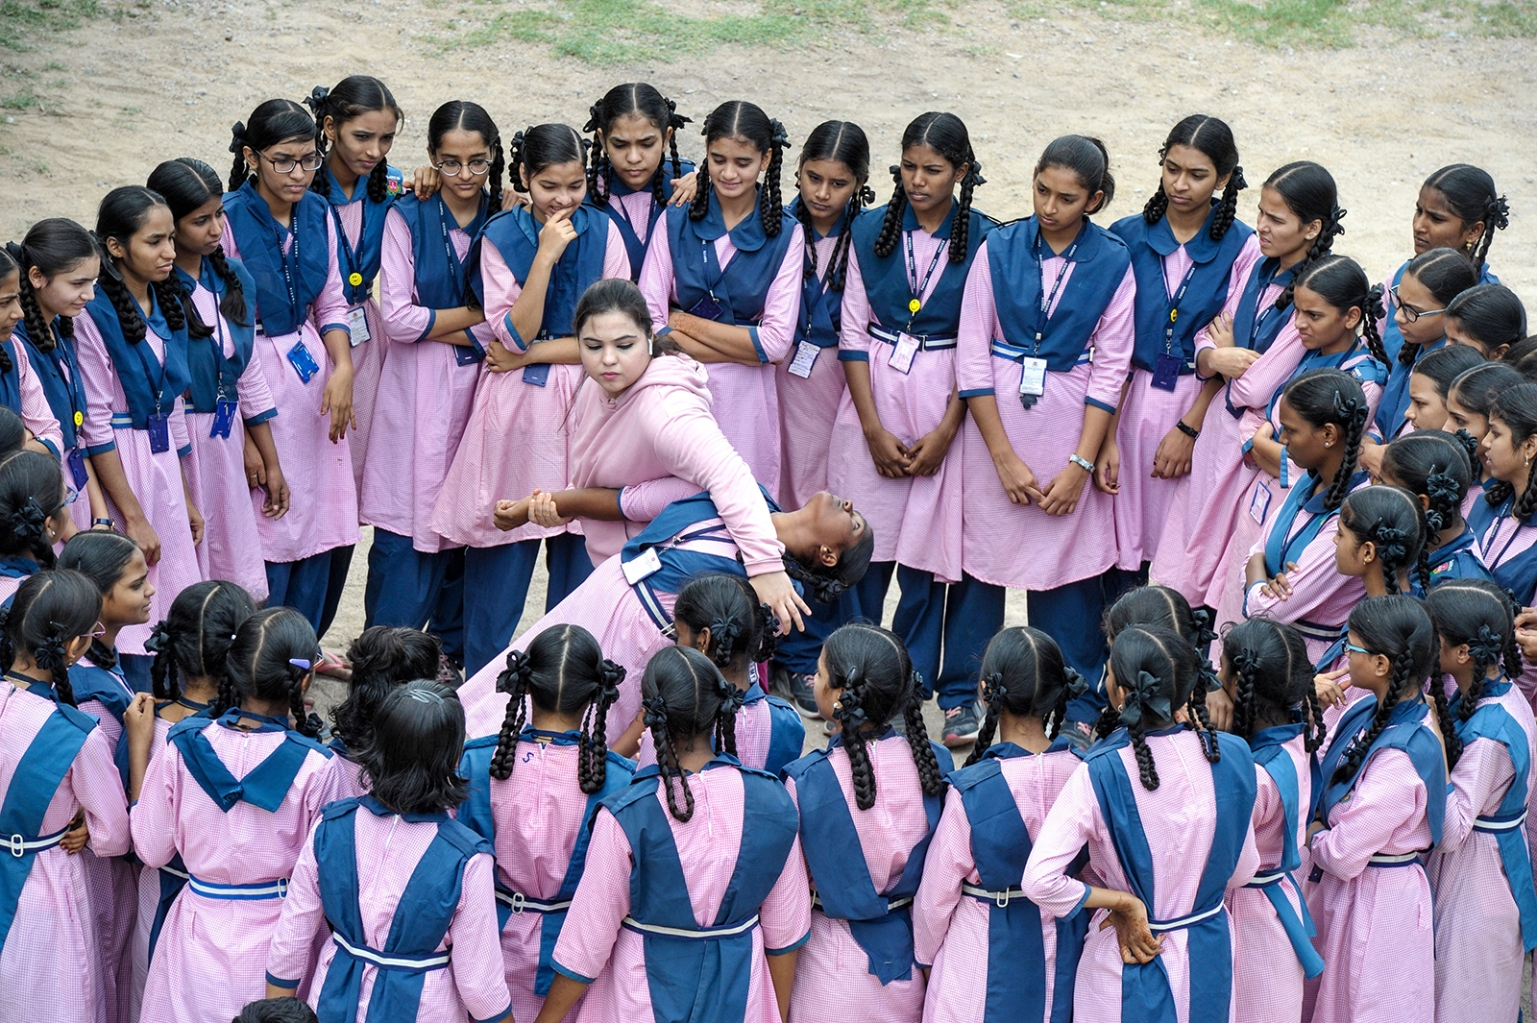 Indian Muslim international karate champion, Syeda Falak shows self-defense techniques to students at the Telangana Minorities Residential Girls School in Hyderabad on June 17. NOAH SEELAM/AFP/Getty Images